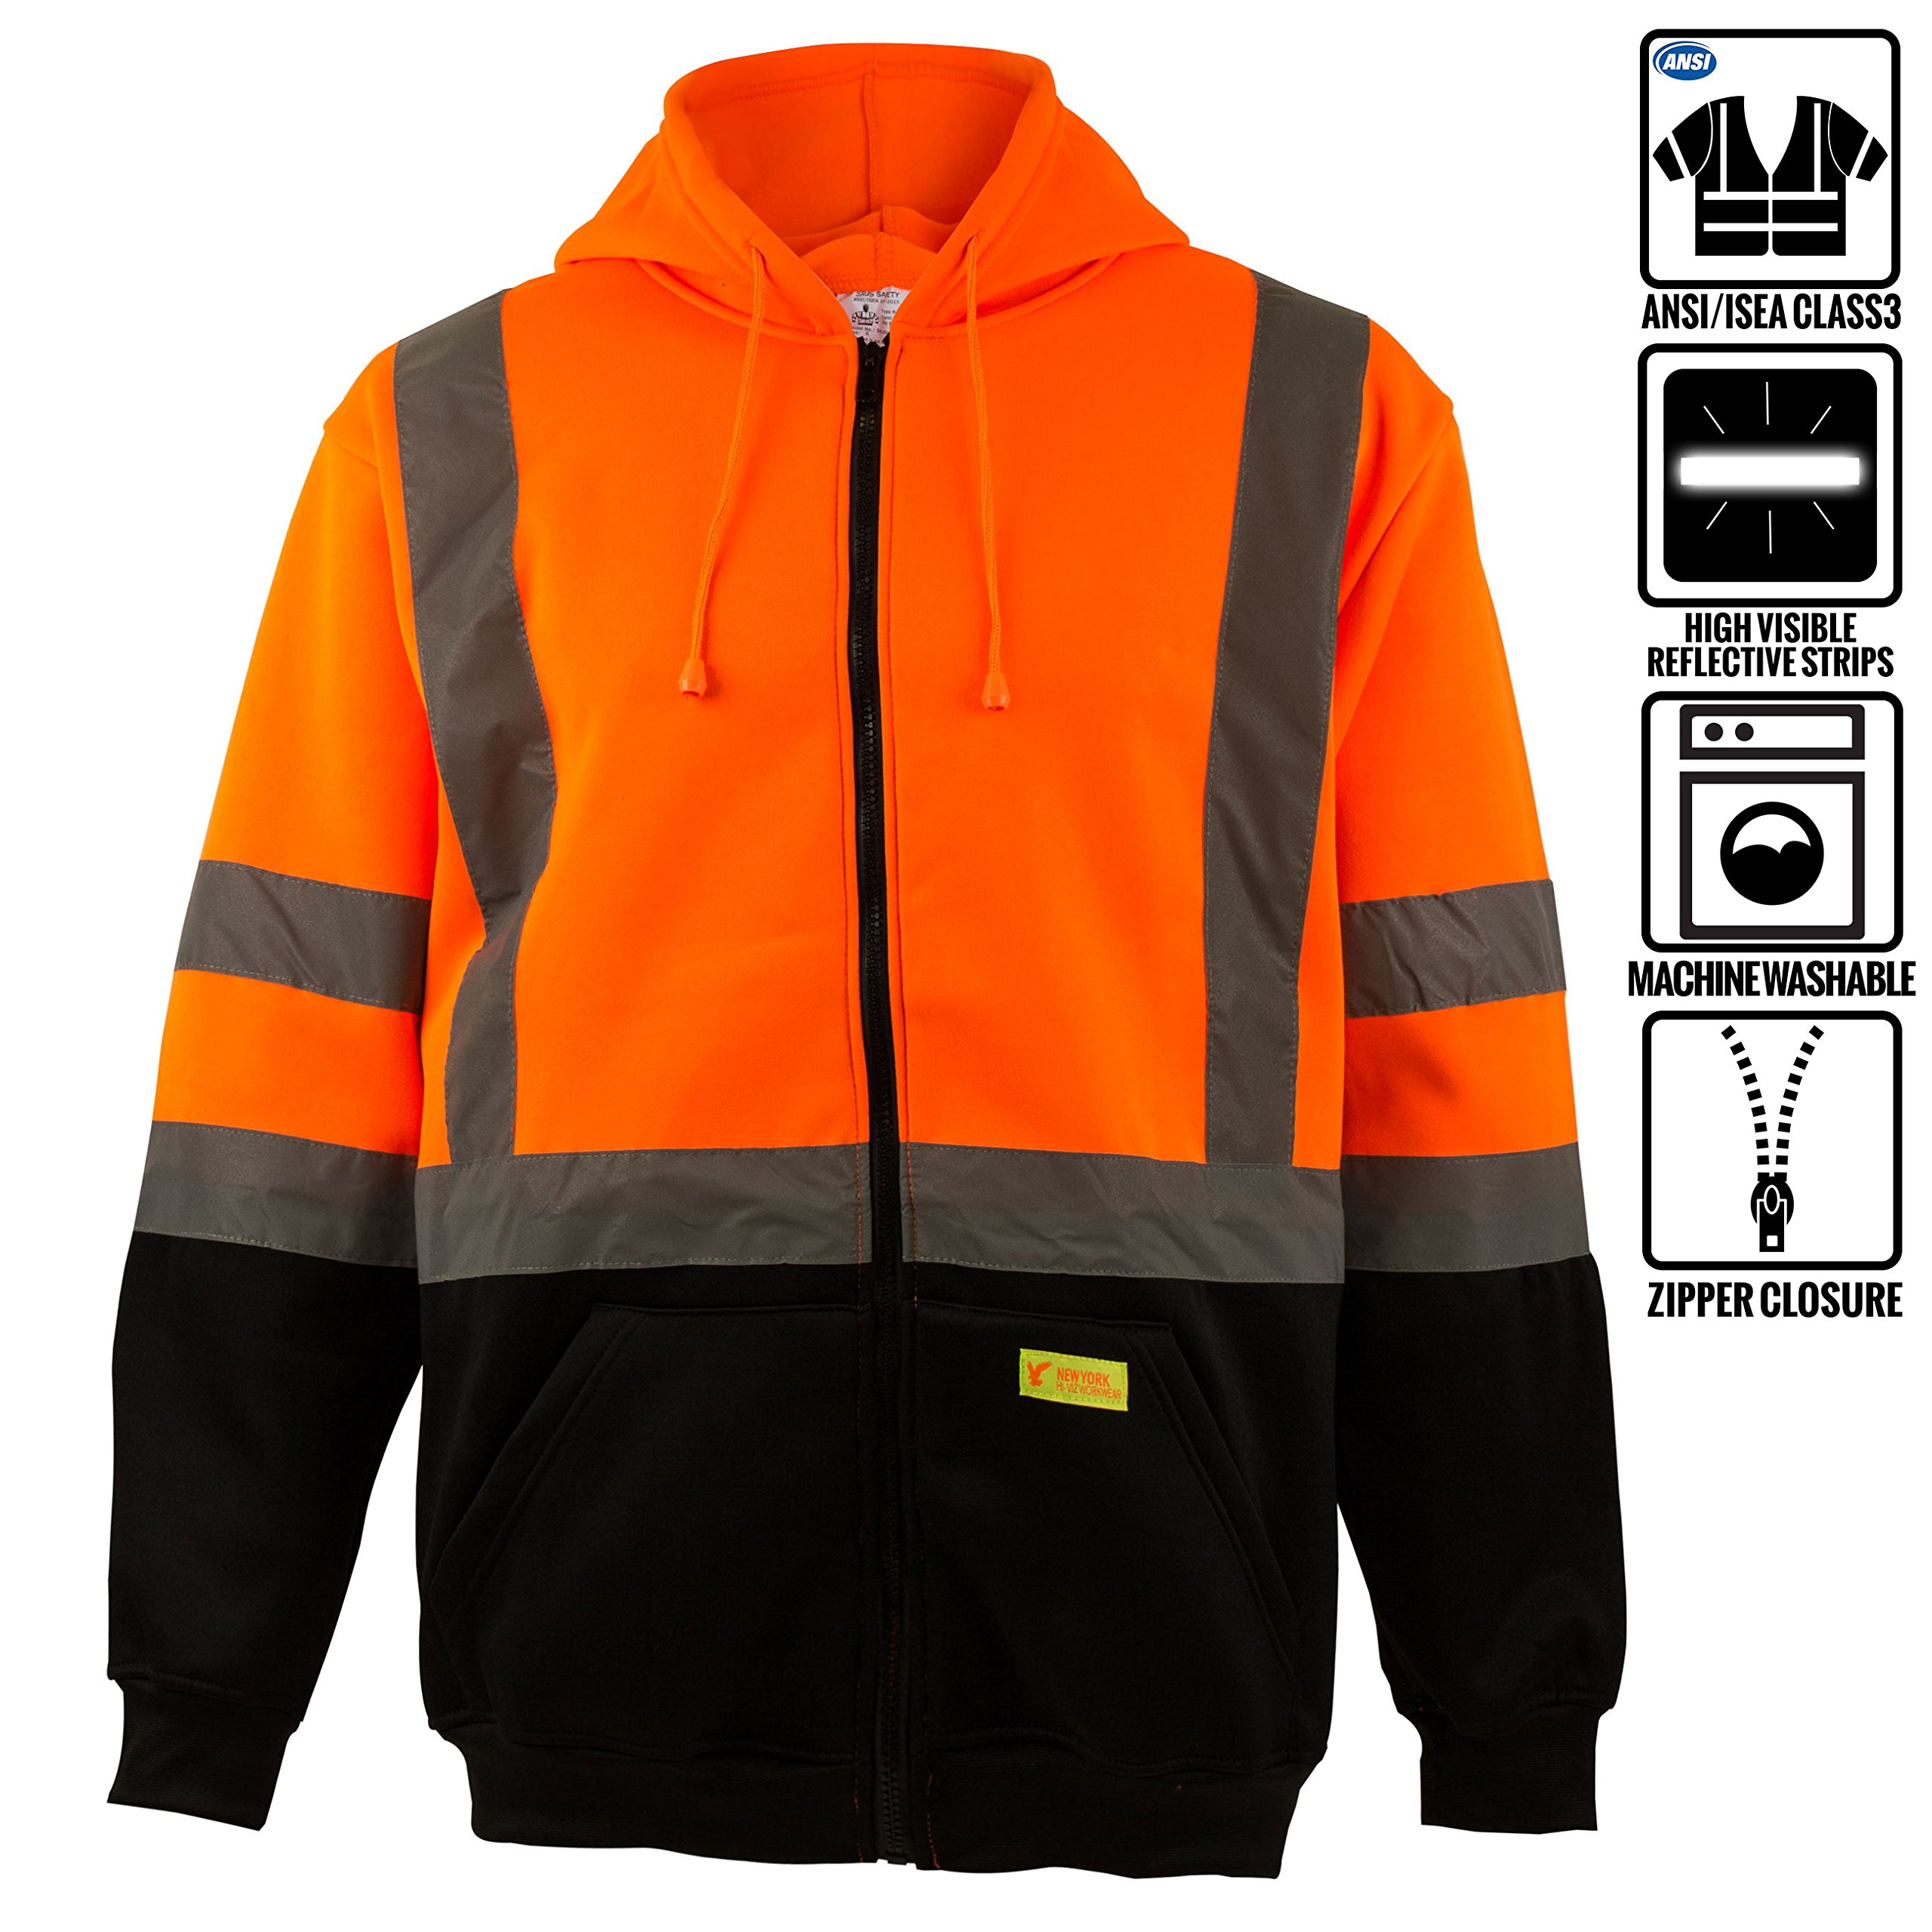 New York Hi-Viz Workwear H9011 Men's ANSI Class 3 High Visibility Class 3 Sweatshirt, Full Zip Hooded, Lightweight, Black Bottom (Extra Large)